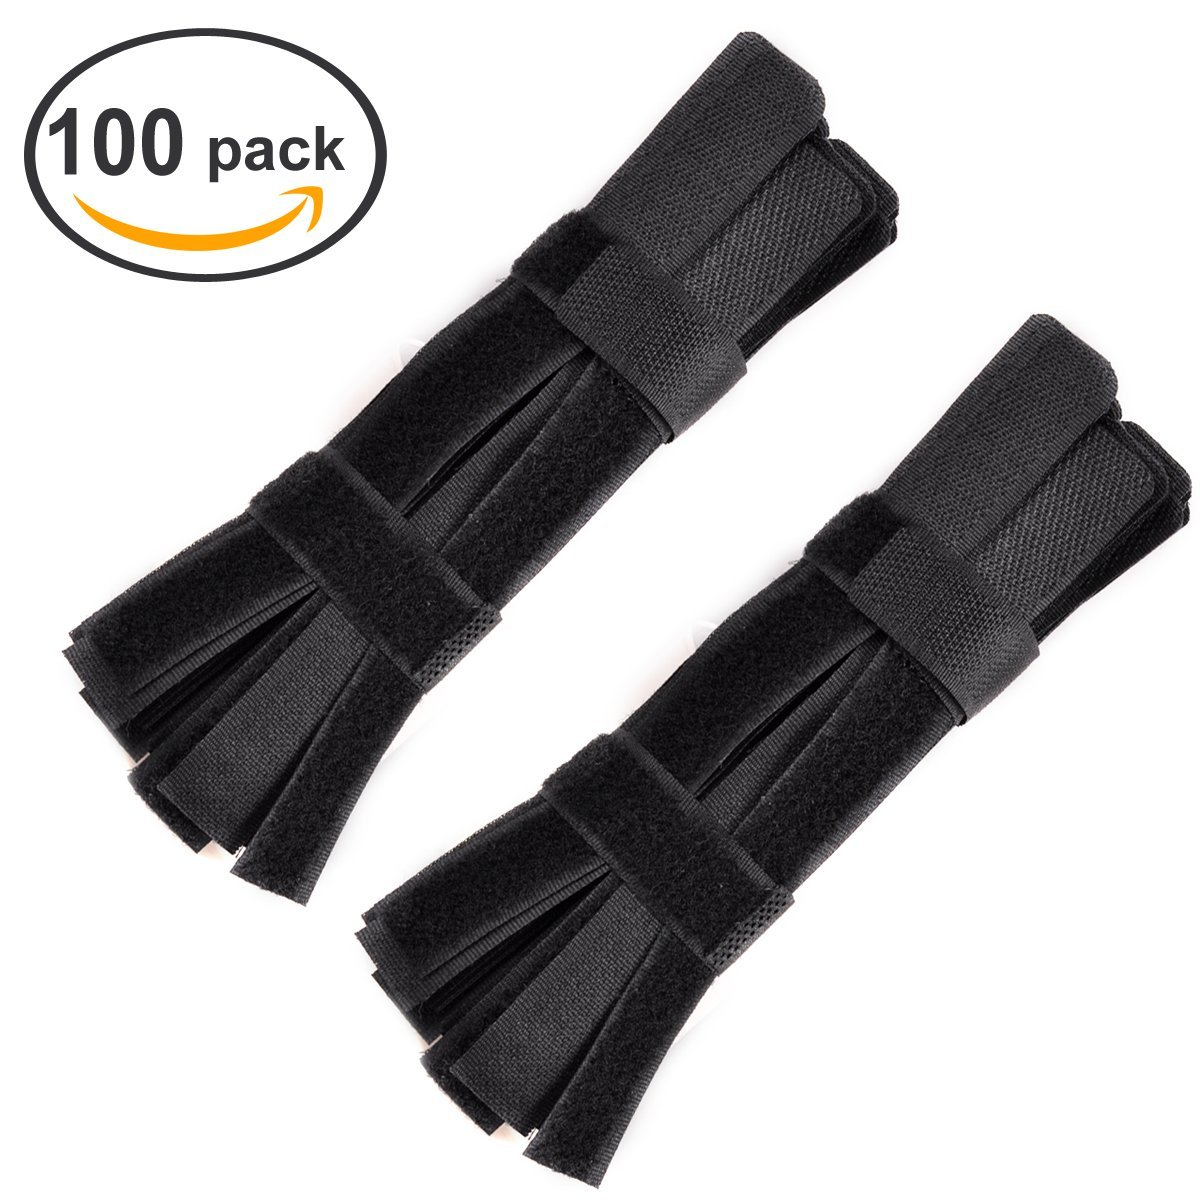 eZAKKA Velcro Cable Ties Straps Hook and Loop Tape Fastening Wires Black,100-Pack